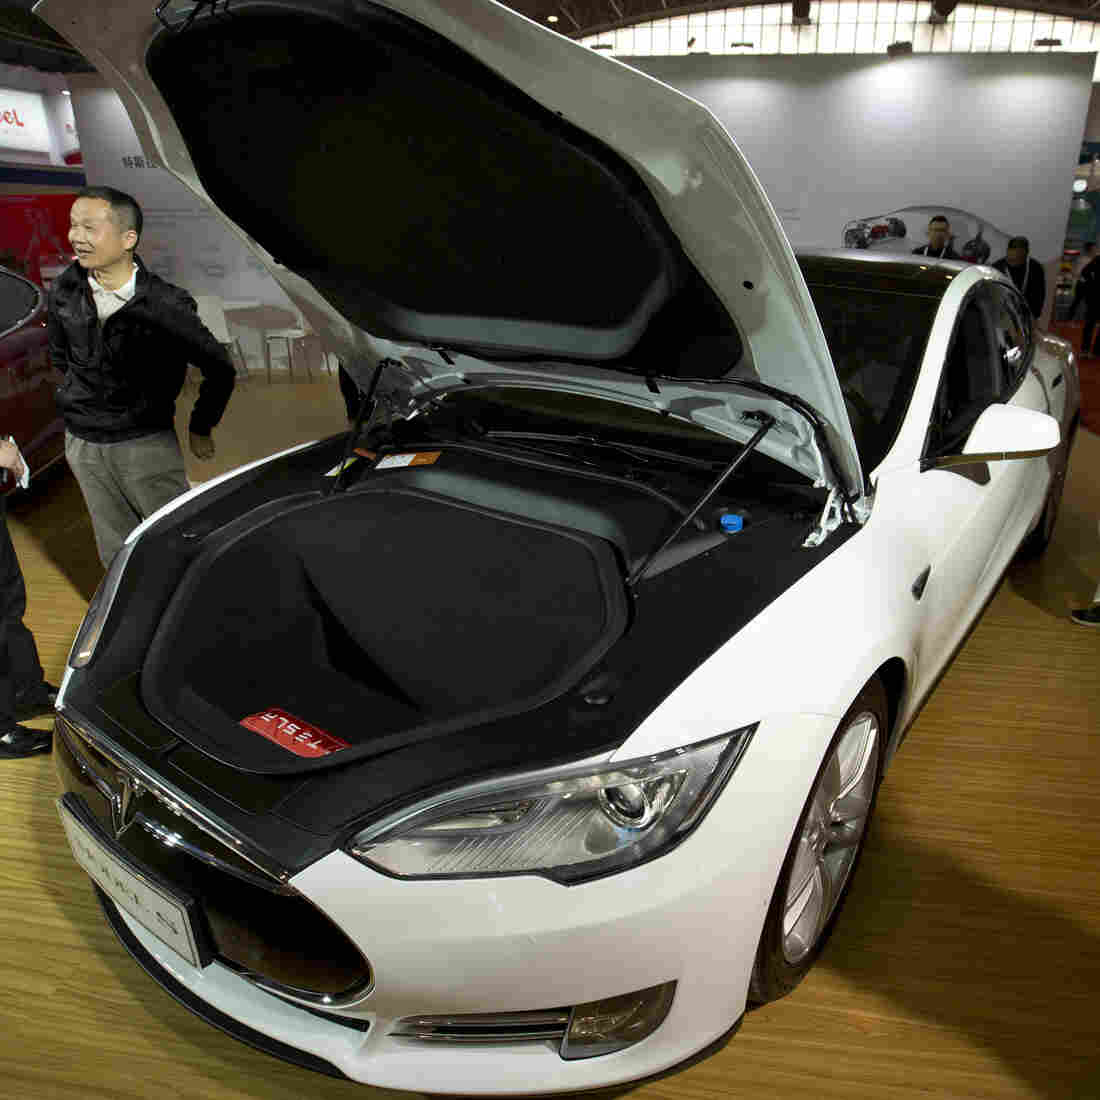 A Tesla Model S like the one seen here at an auto show earlier this year was in autopilot mode when it crashed into a tractor trailer.